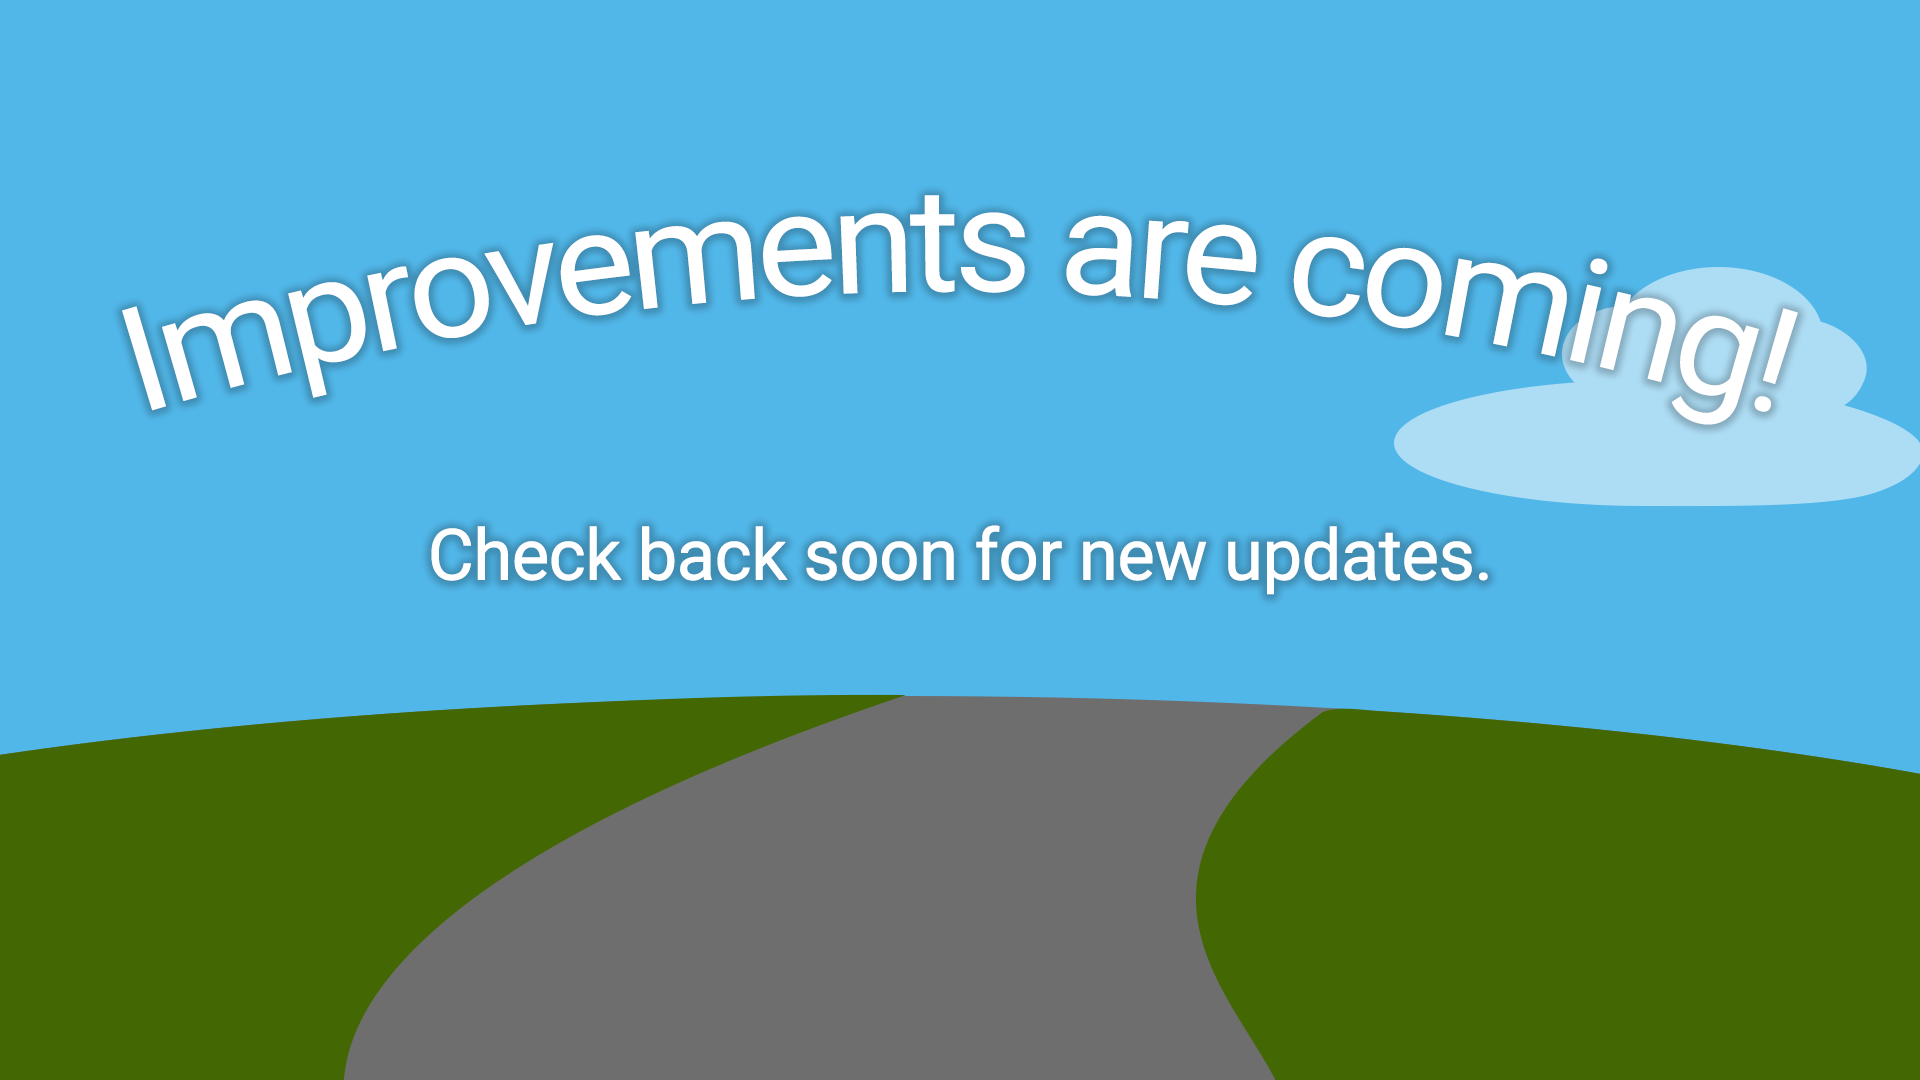 Improvements are coming